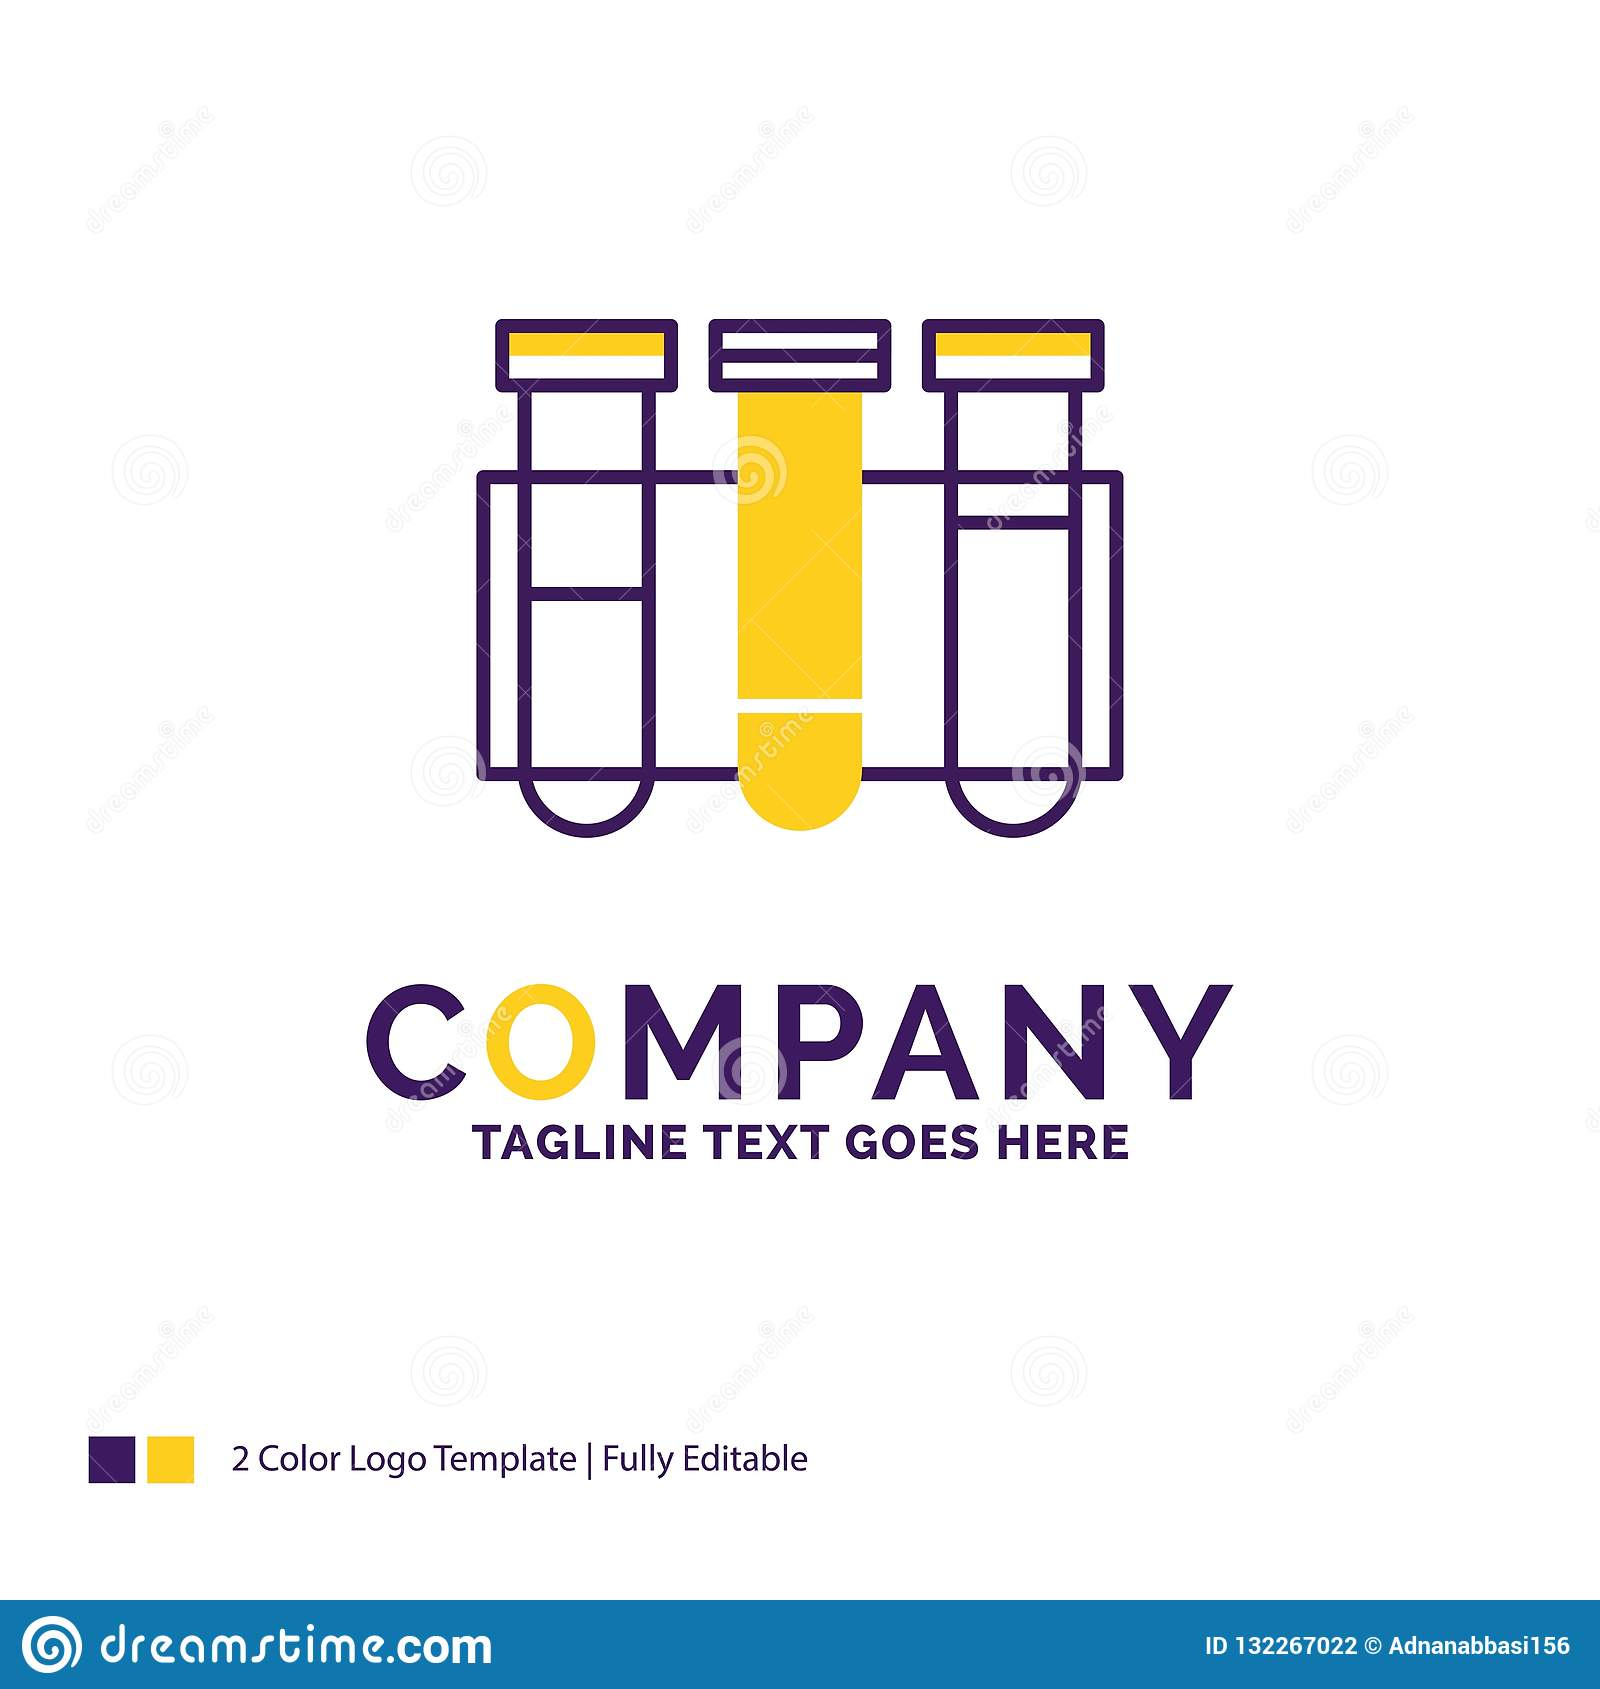 Company Name Logo Design For Test, Tube, Science, laboratory, bl